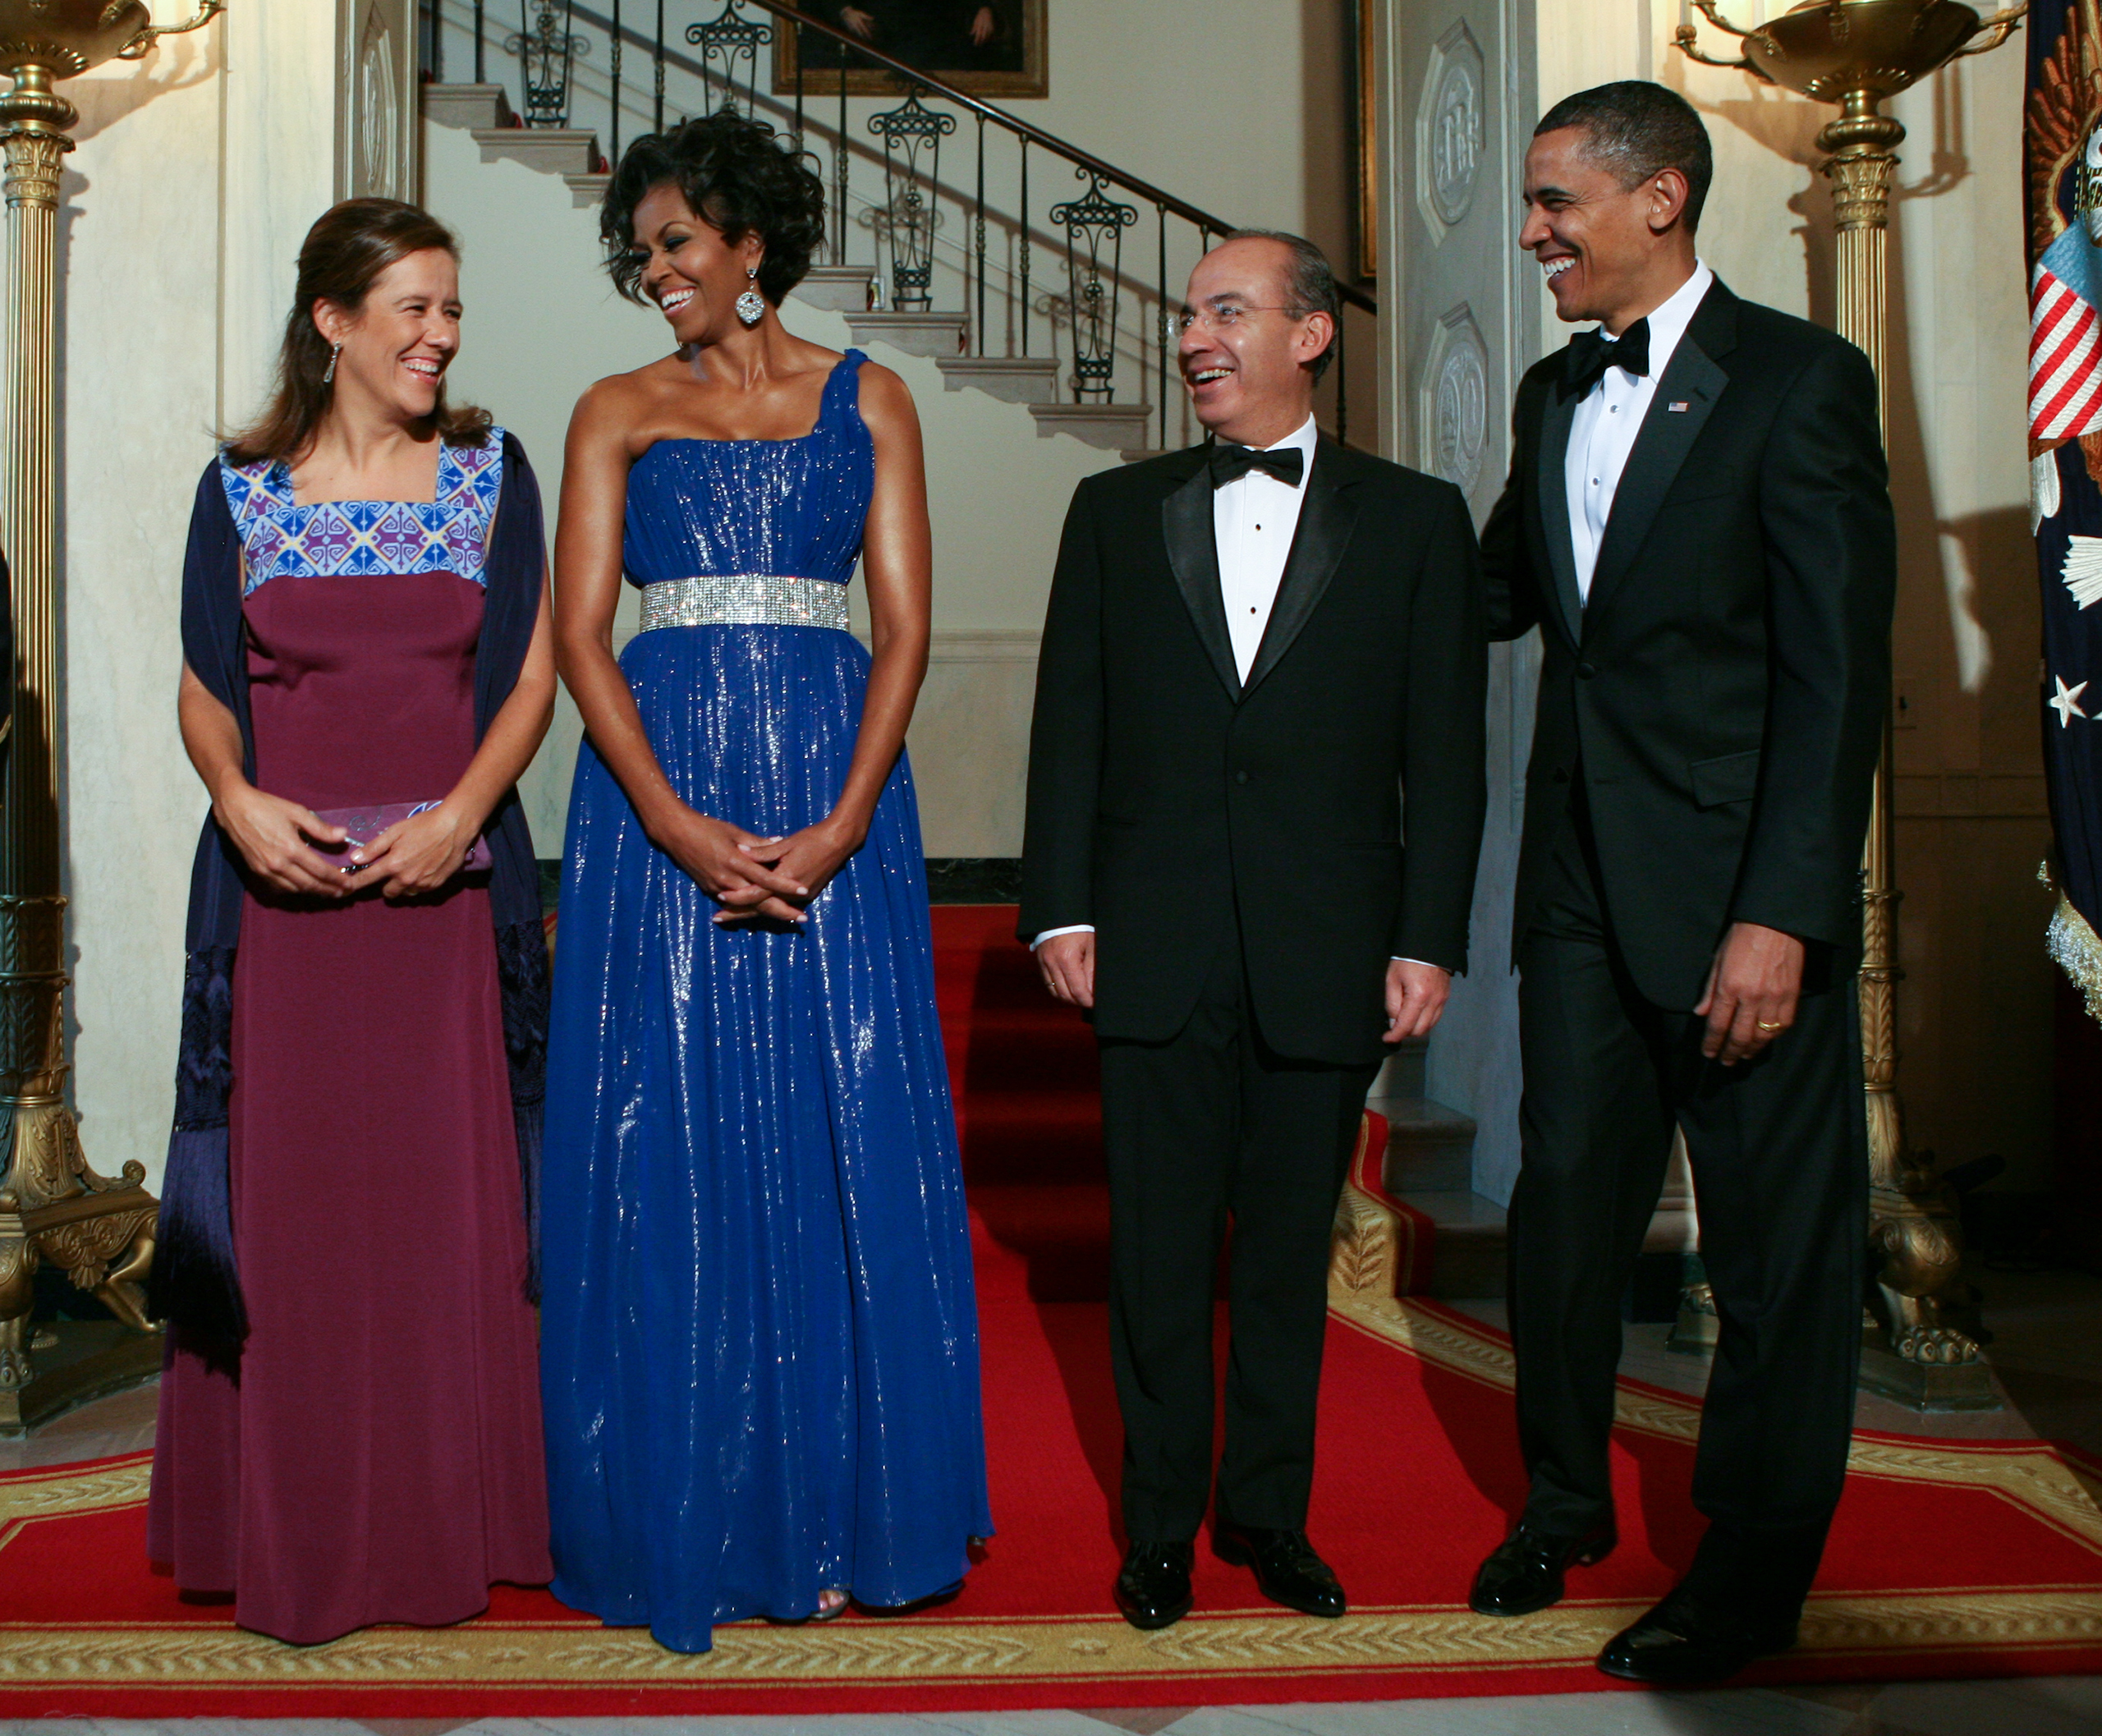 Barack Obama and Michelle Obama welcome Mexican President Felipe Calderon and his wife Margarita Zavala to the White House in Washington, D.C., on  May 19, 2010.